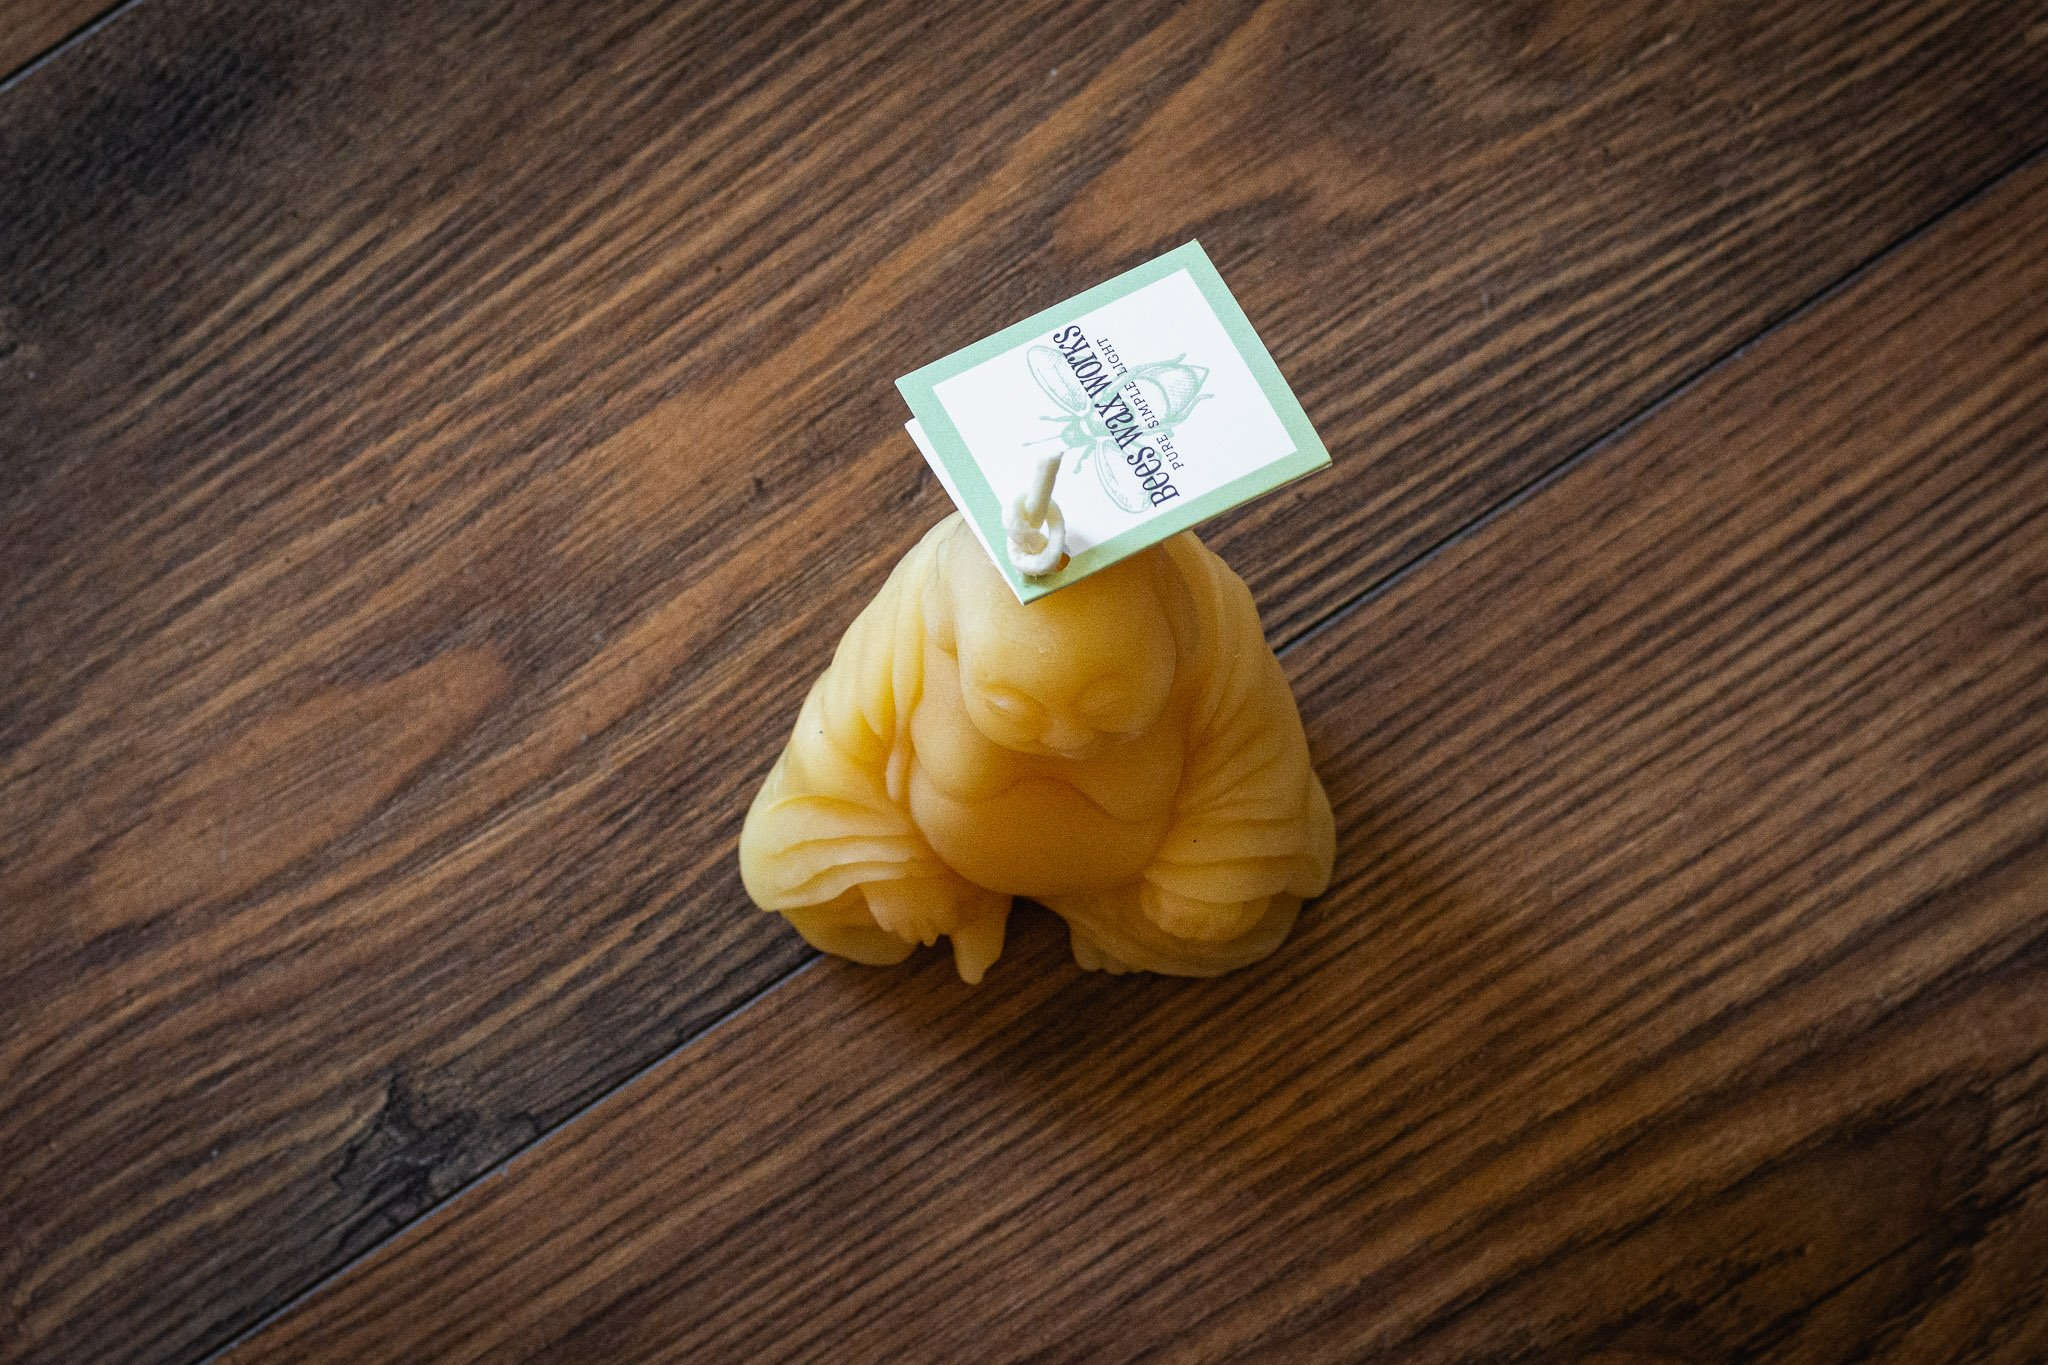 Laughing Buddha Candle By Bees Wax Works